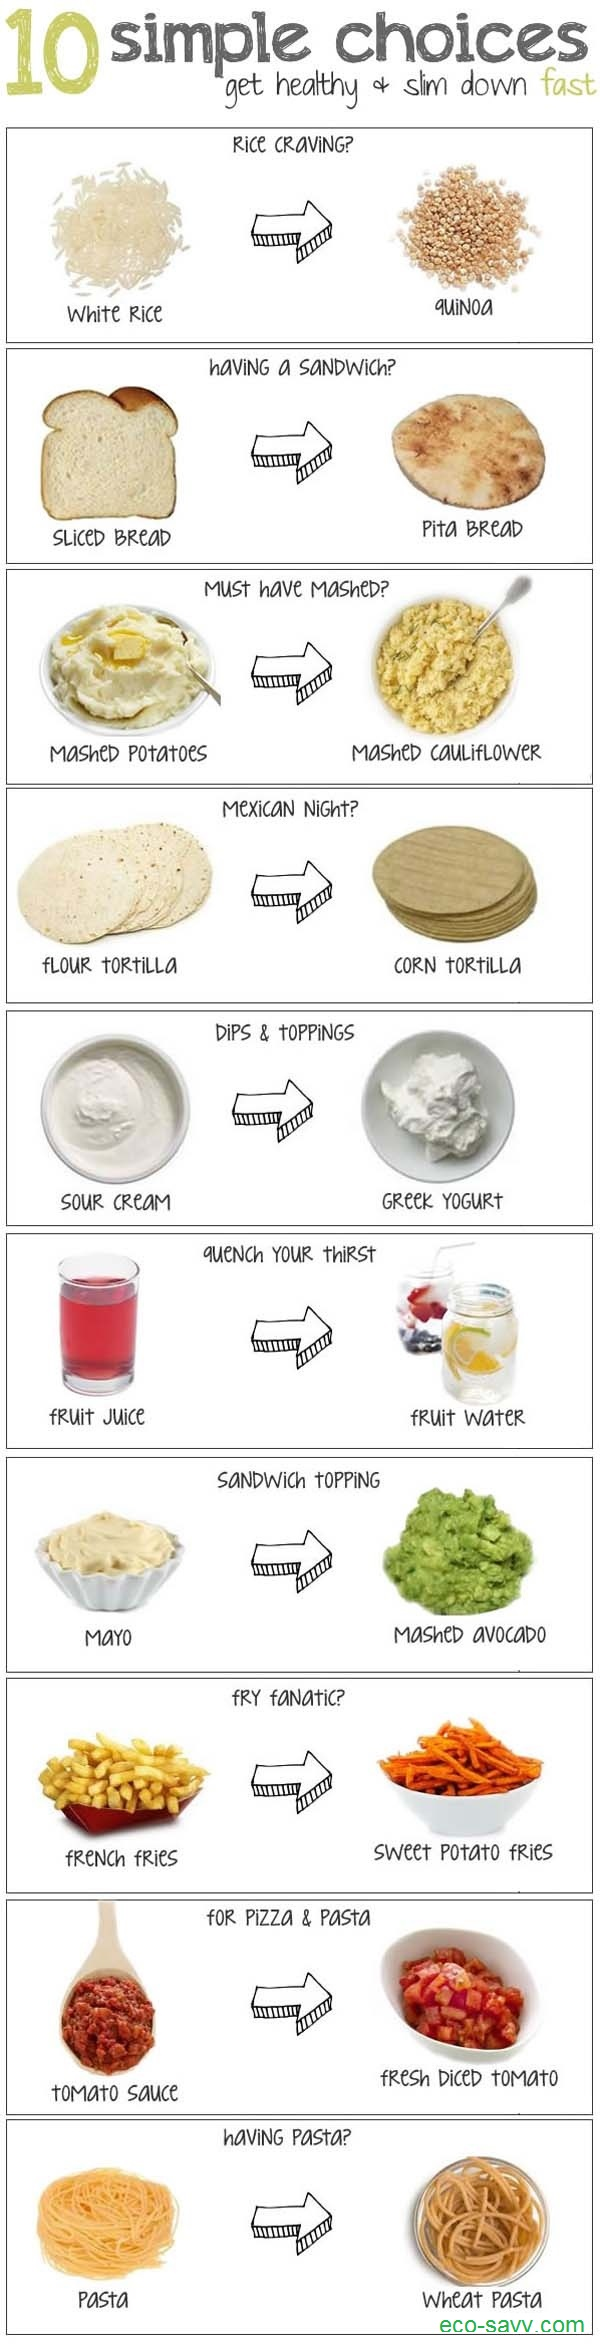 Natural Remedy To Slim Down